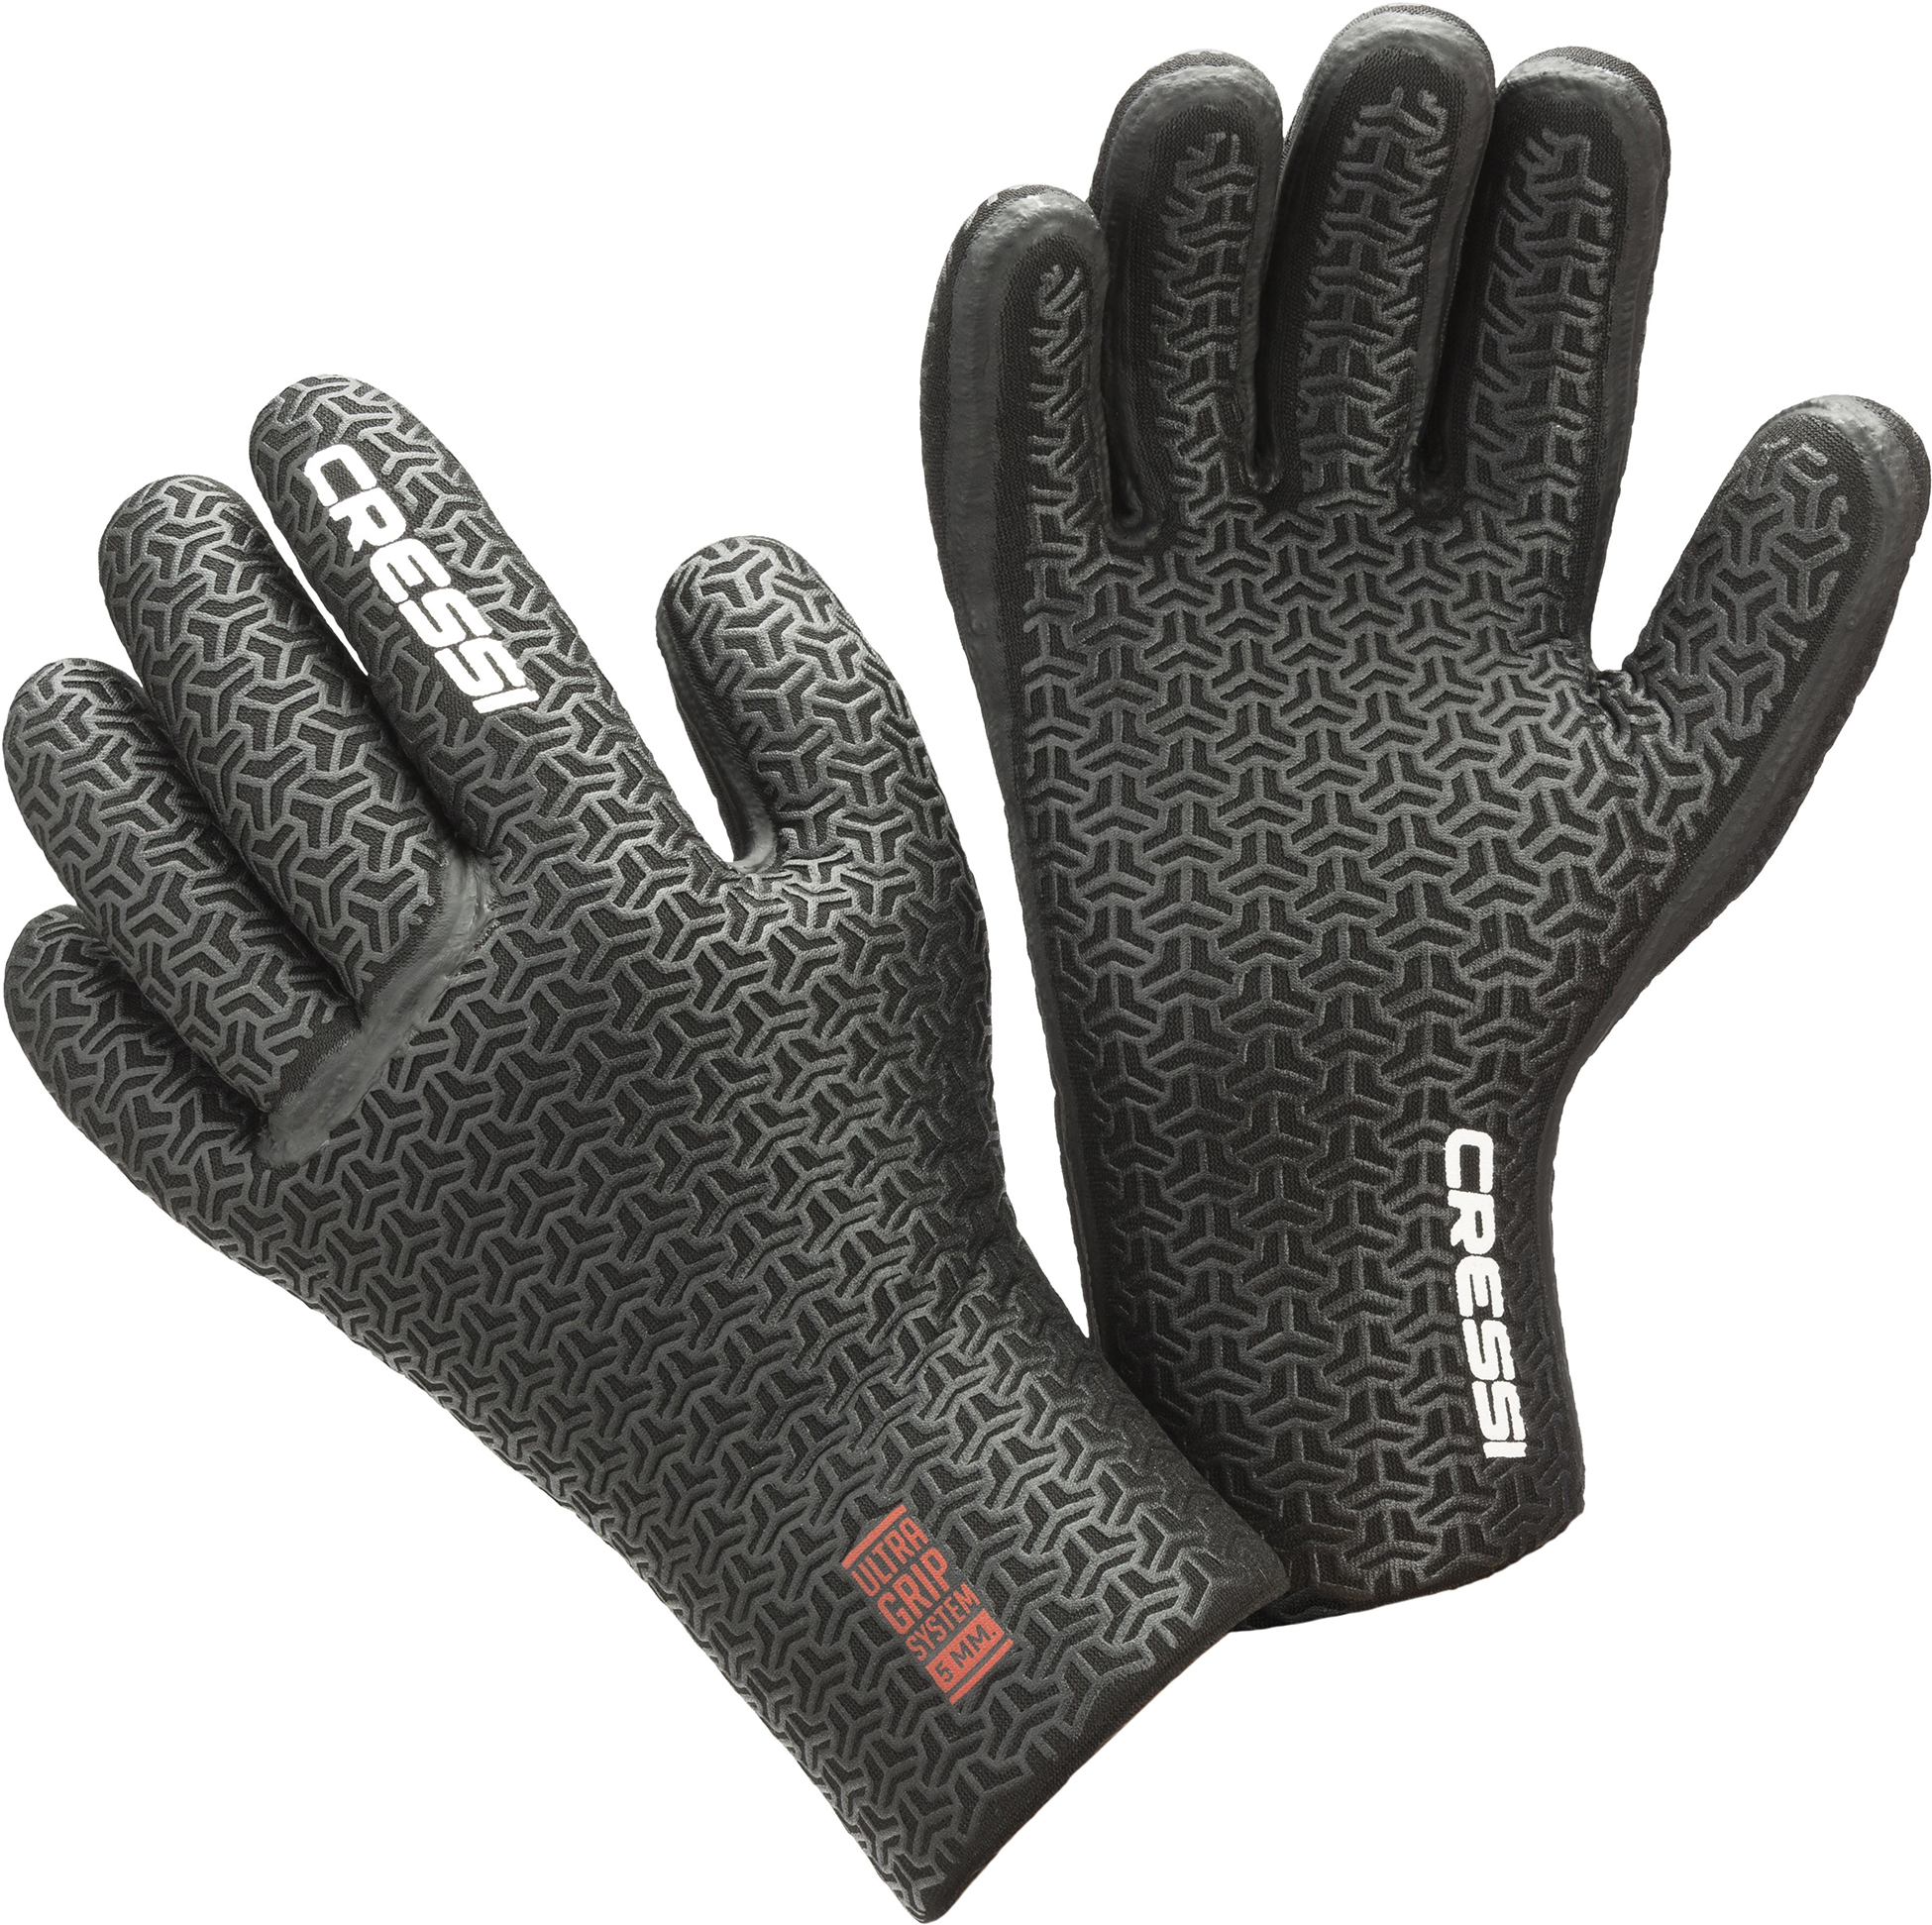 Gotland liquid seal gloves